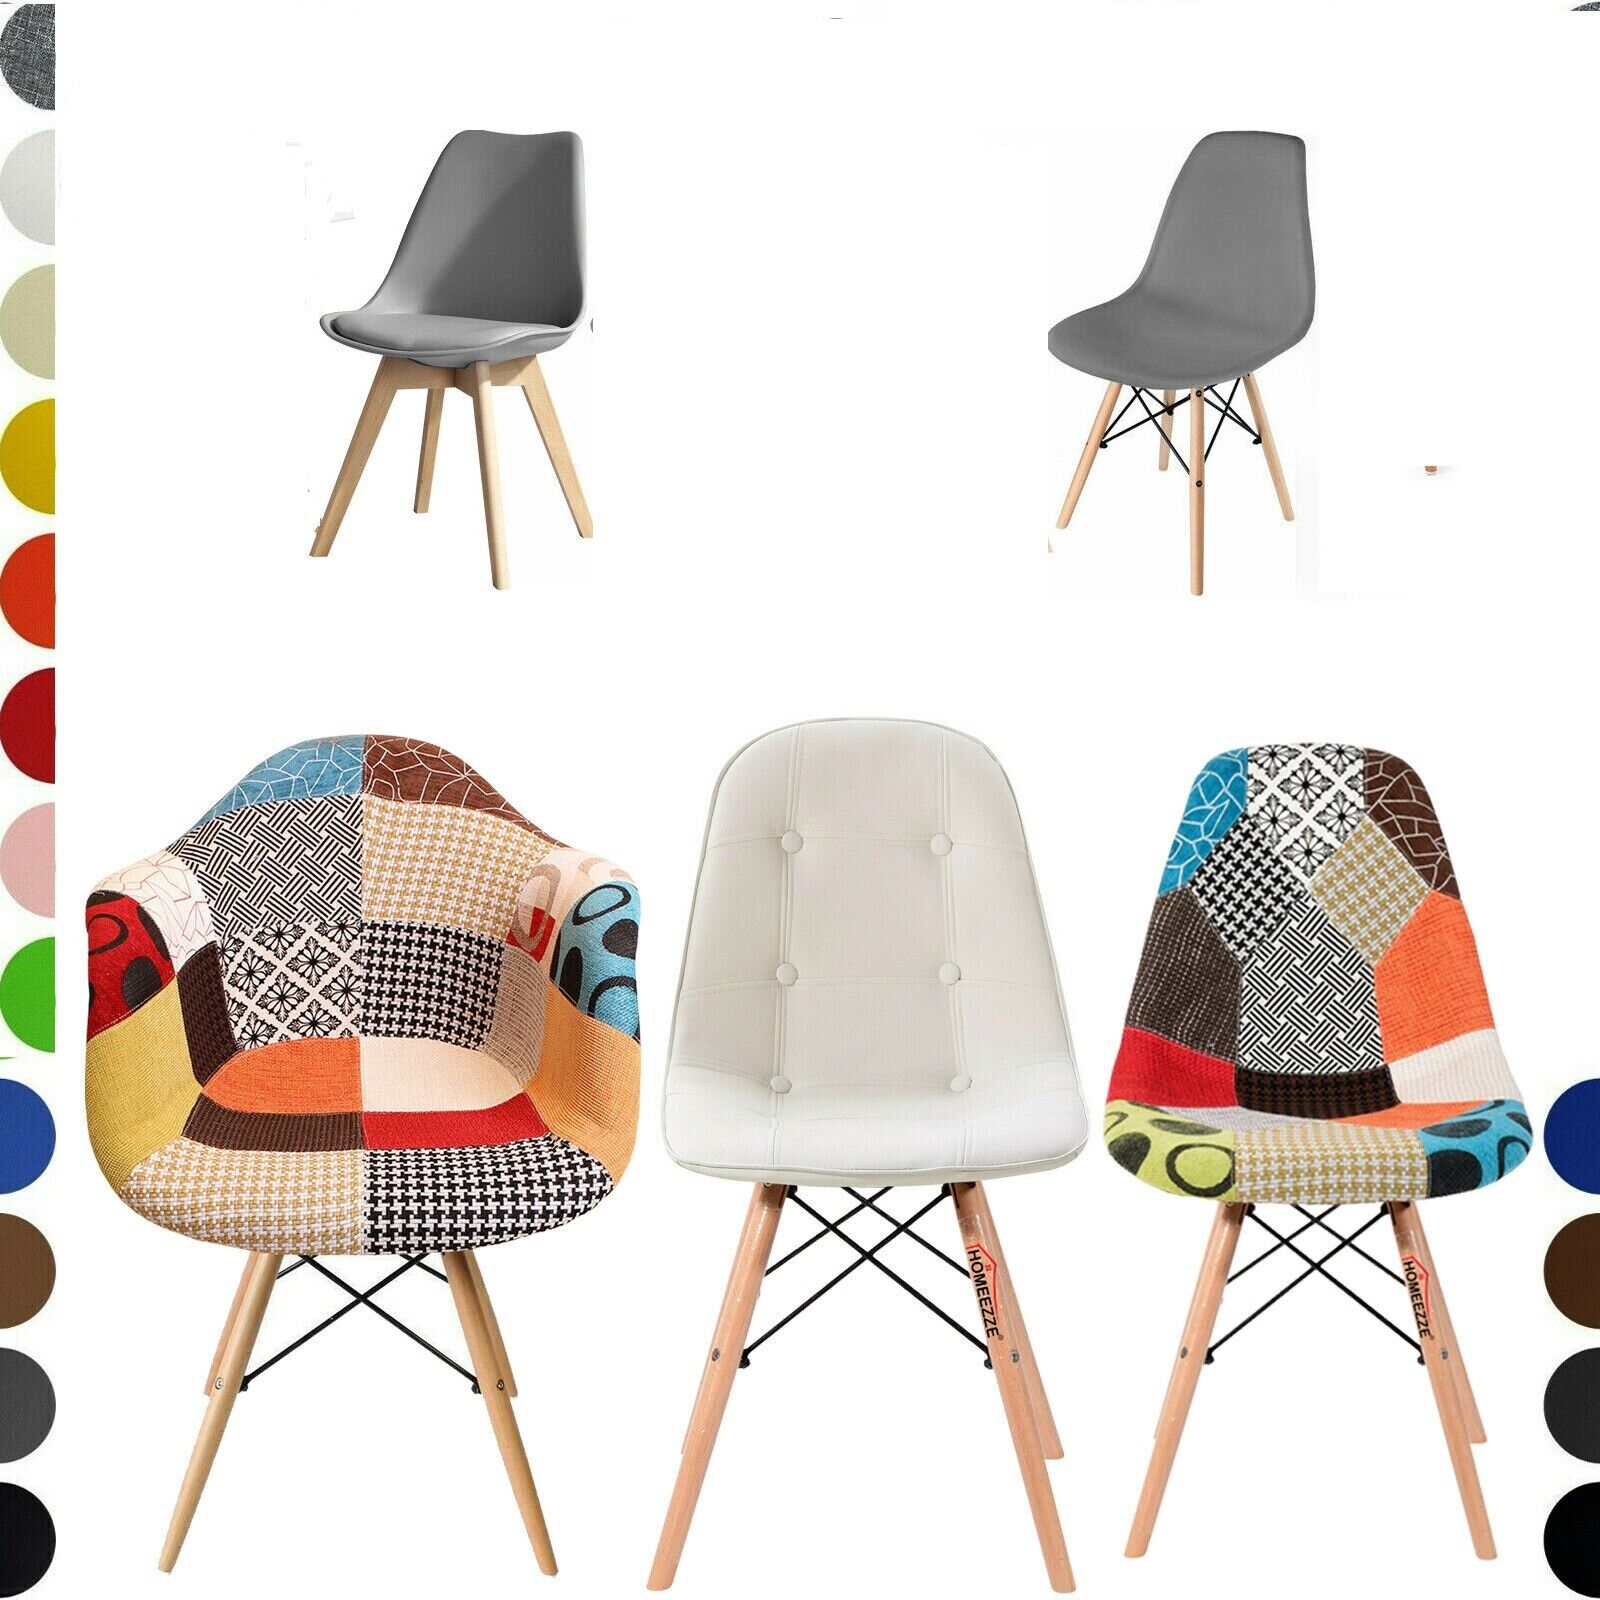 Prime Set Of 2 4 Eiffel Style Dining Chairs Armchair Solid Wood Patchwork Office Chair Pdpeps Interior Chair Design Pdpepsorg